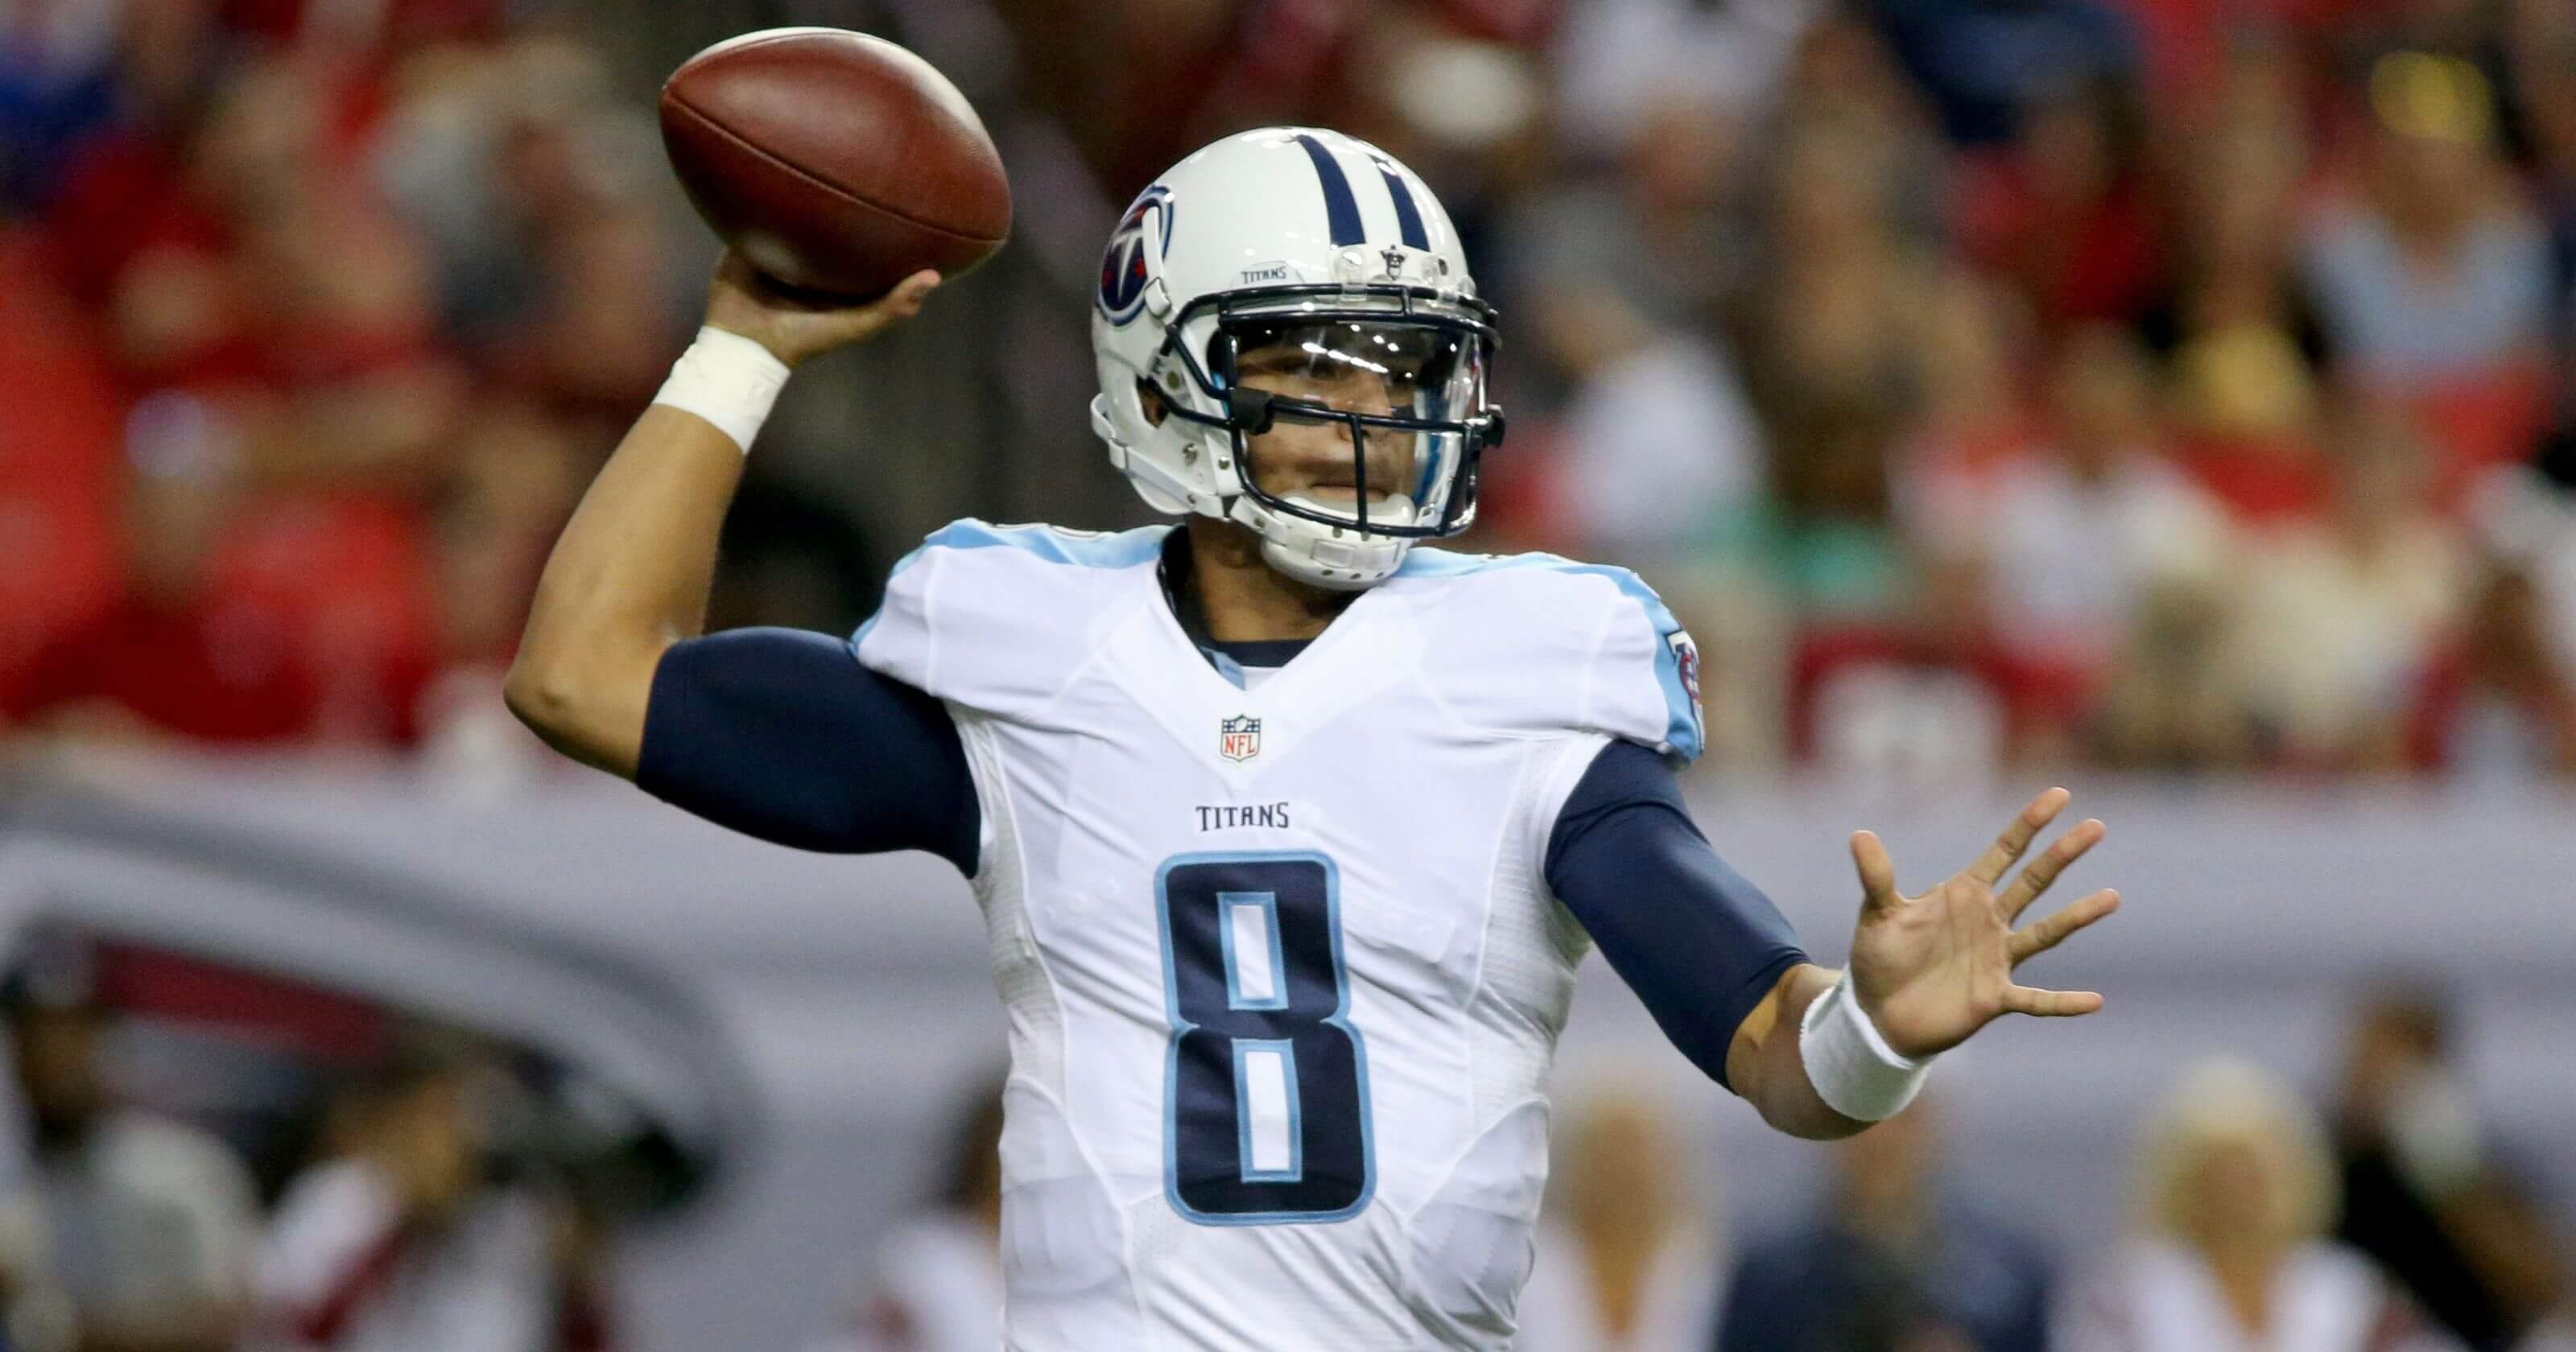 6ad9f3f3a 3 Reasons To Not Read Too Much Into Marcus Mariota s NFL Debut -